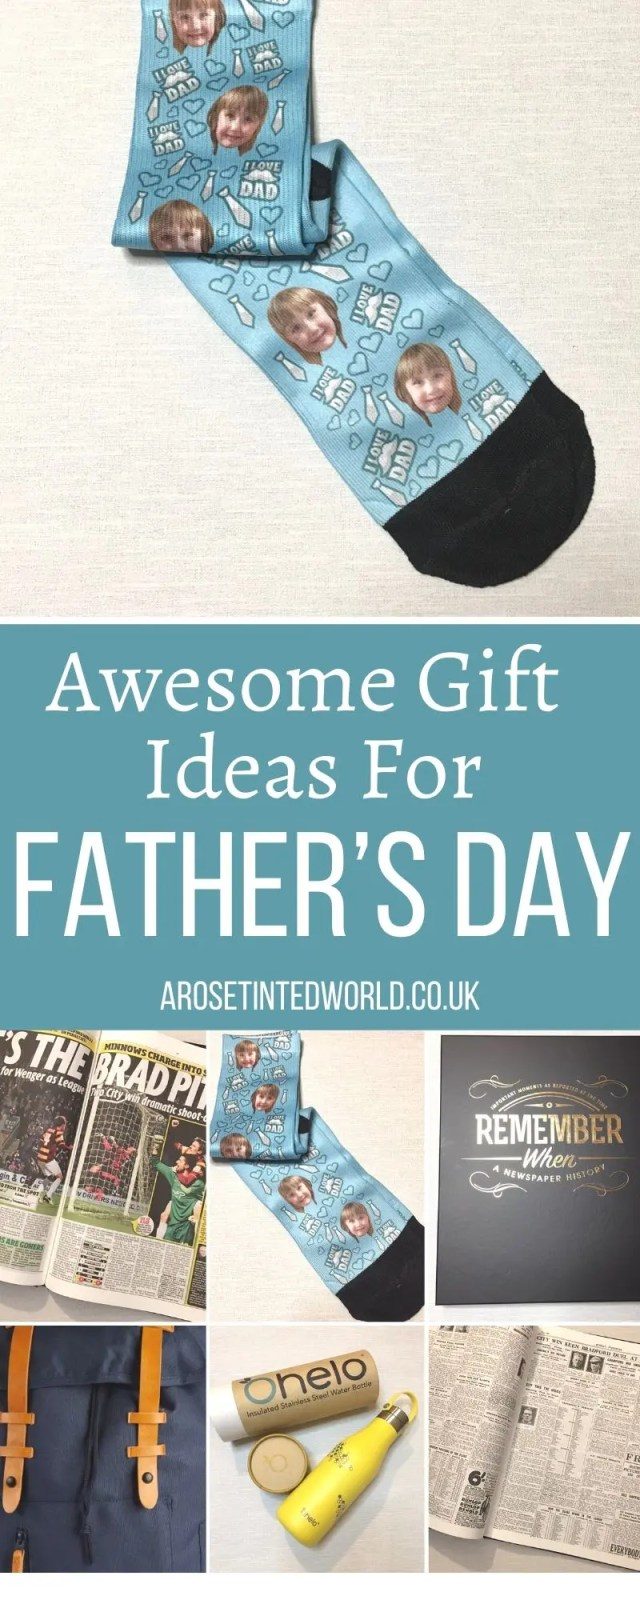 Father's Day Gift Guide - show some love to the special dad in your life this Father's Day with this gift guide full of brilliant ideas he will go crazy for. #fathersday #fathersdaygifts #giftideas #fathersdaygiftideas